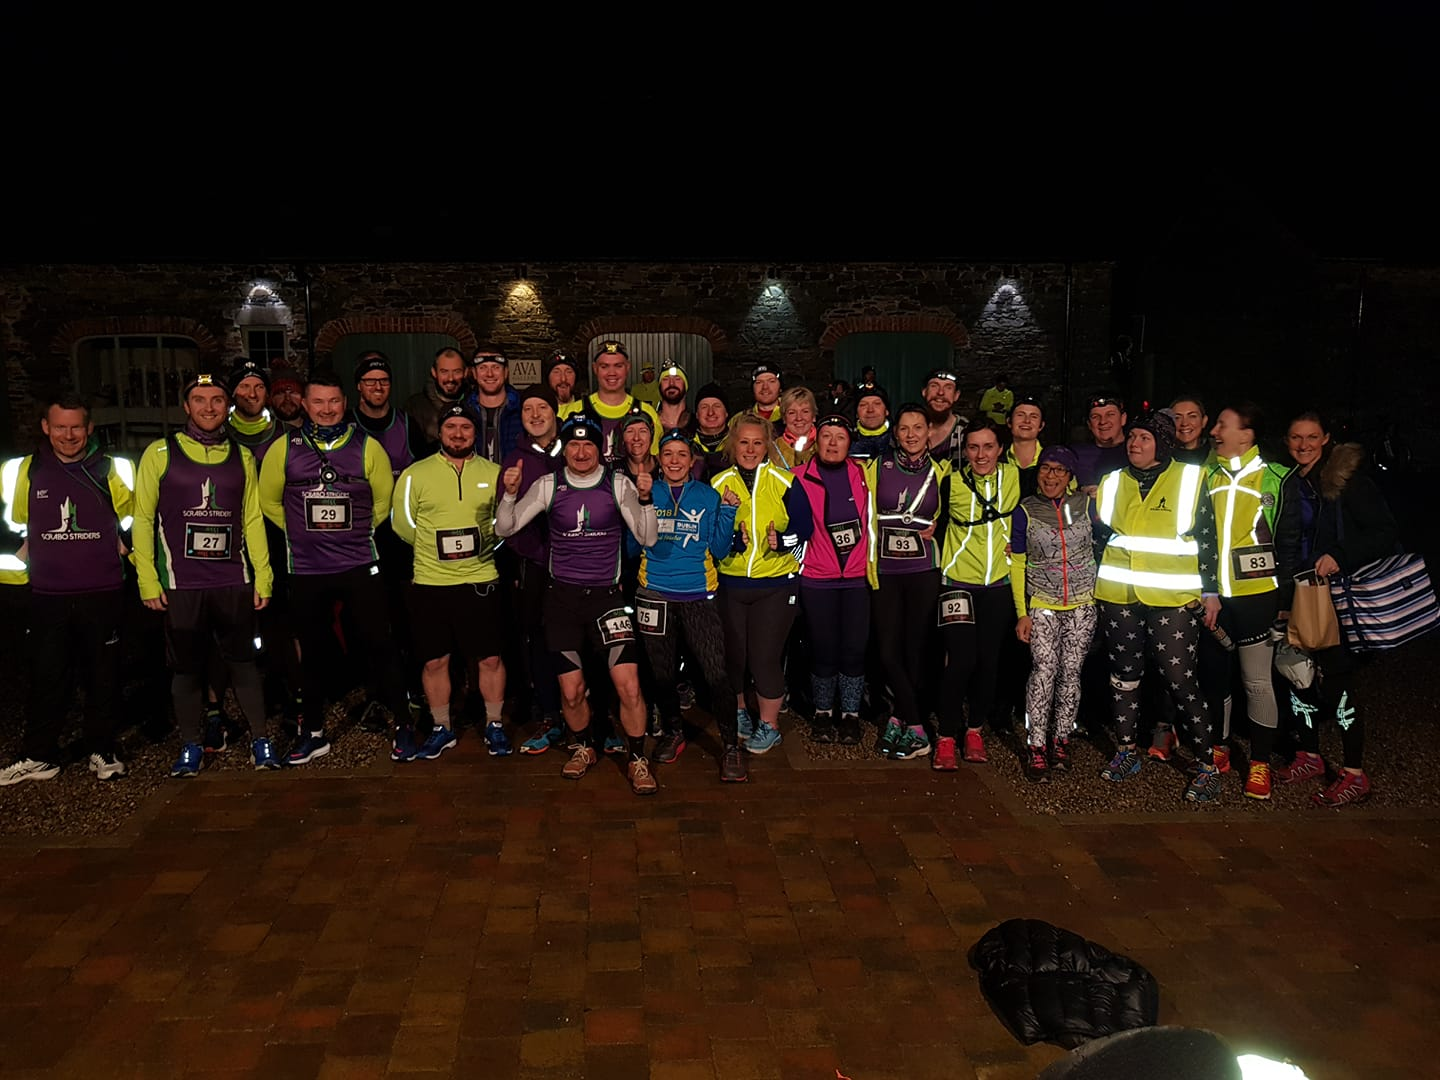 Scrabo Striders don't Fearr The Night, Podium for Ricky and Catherine. Cross country success for Norman.